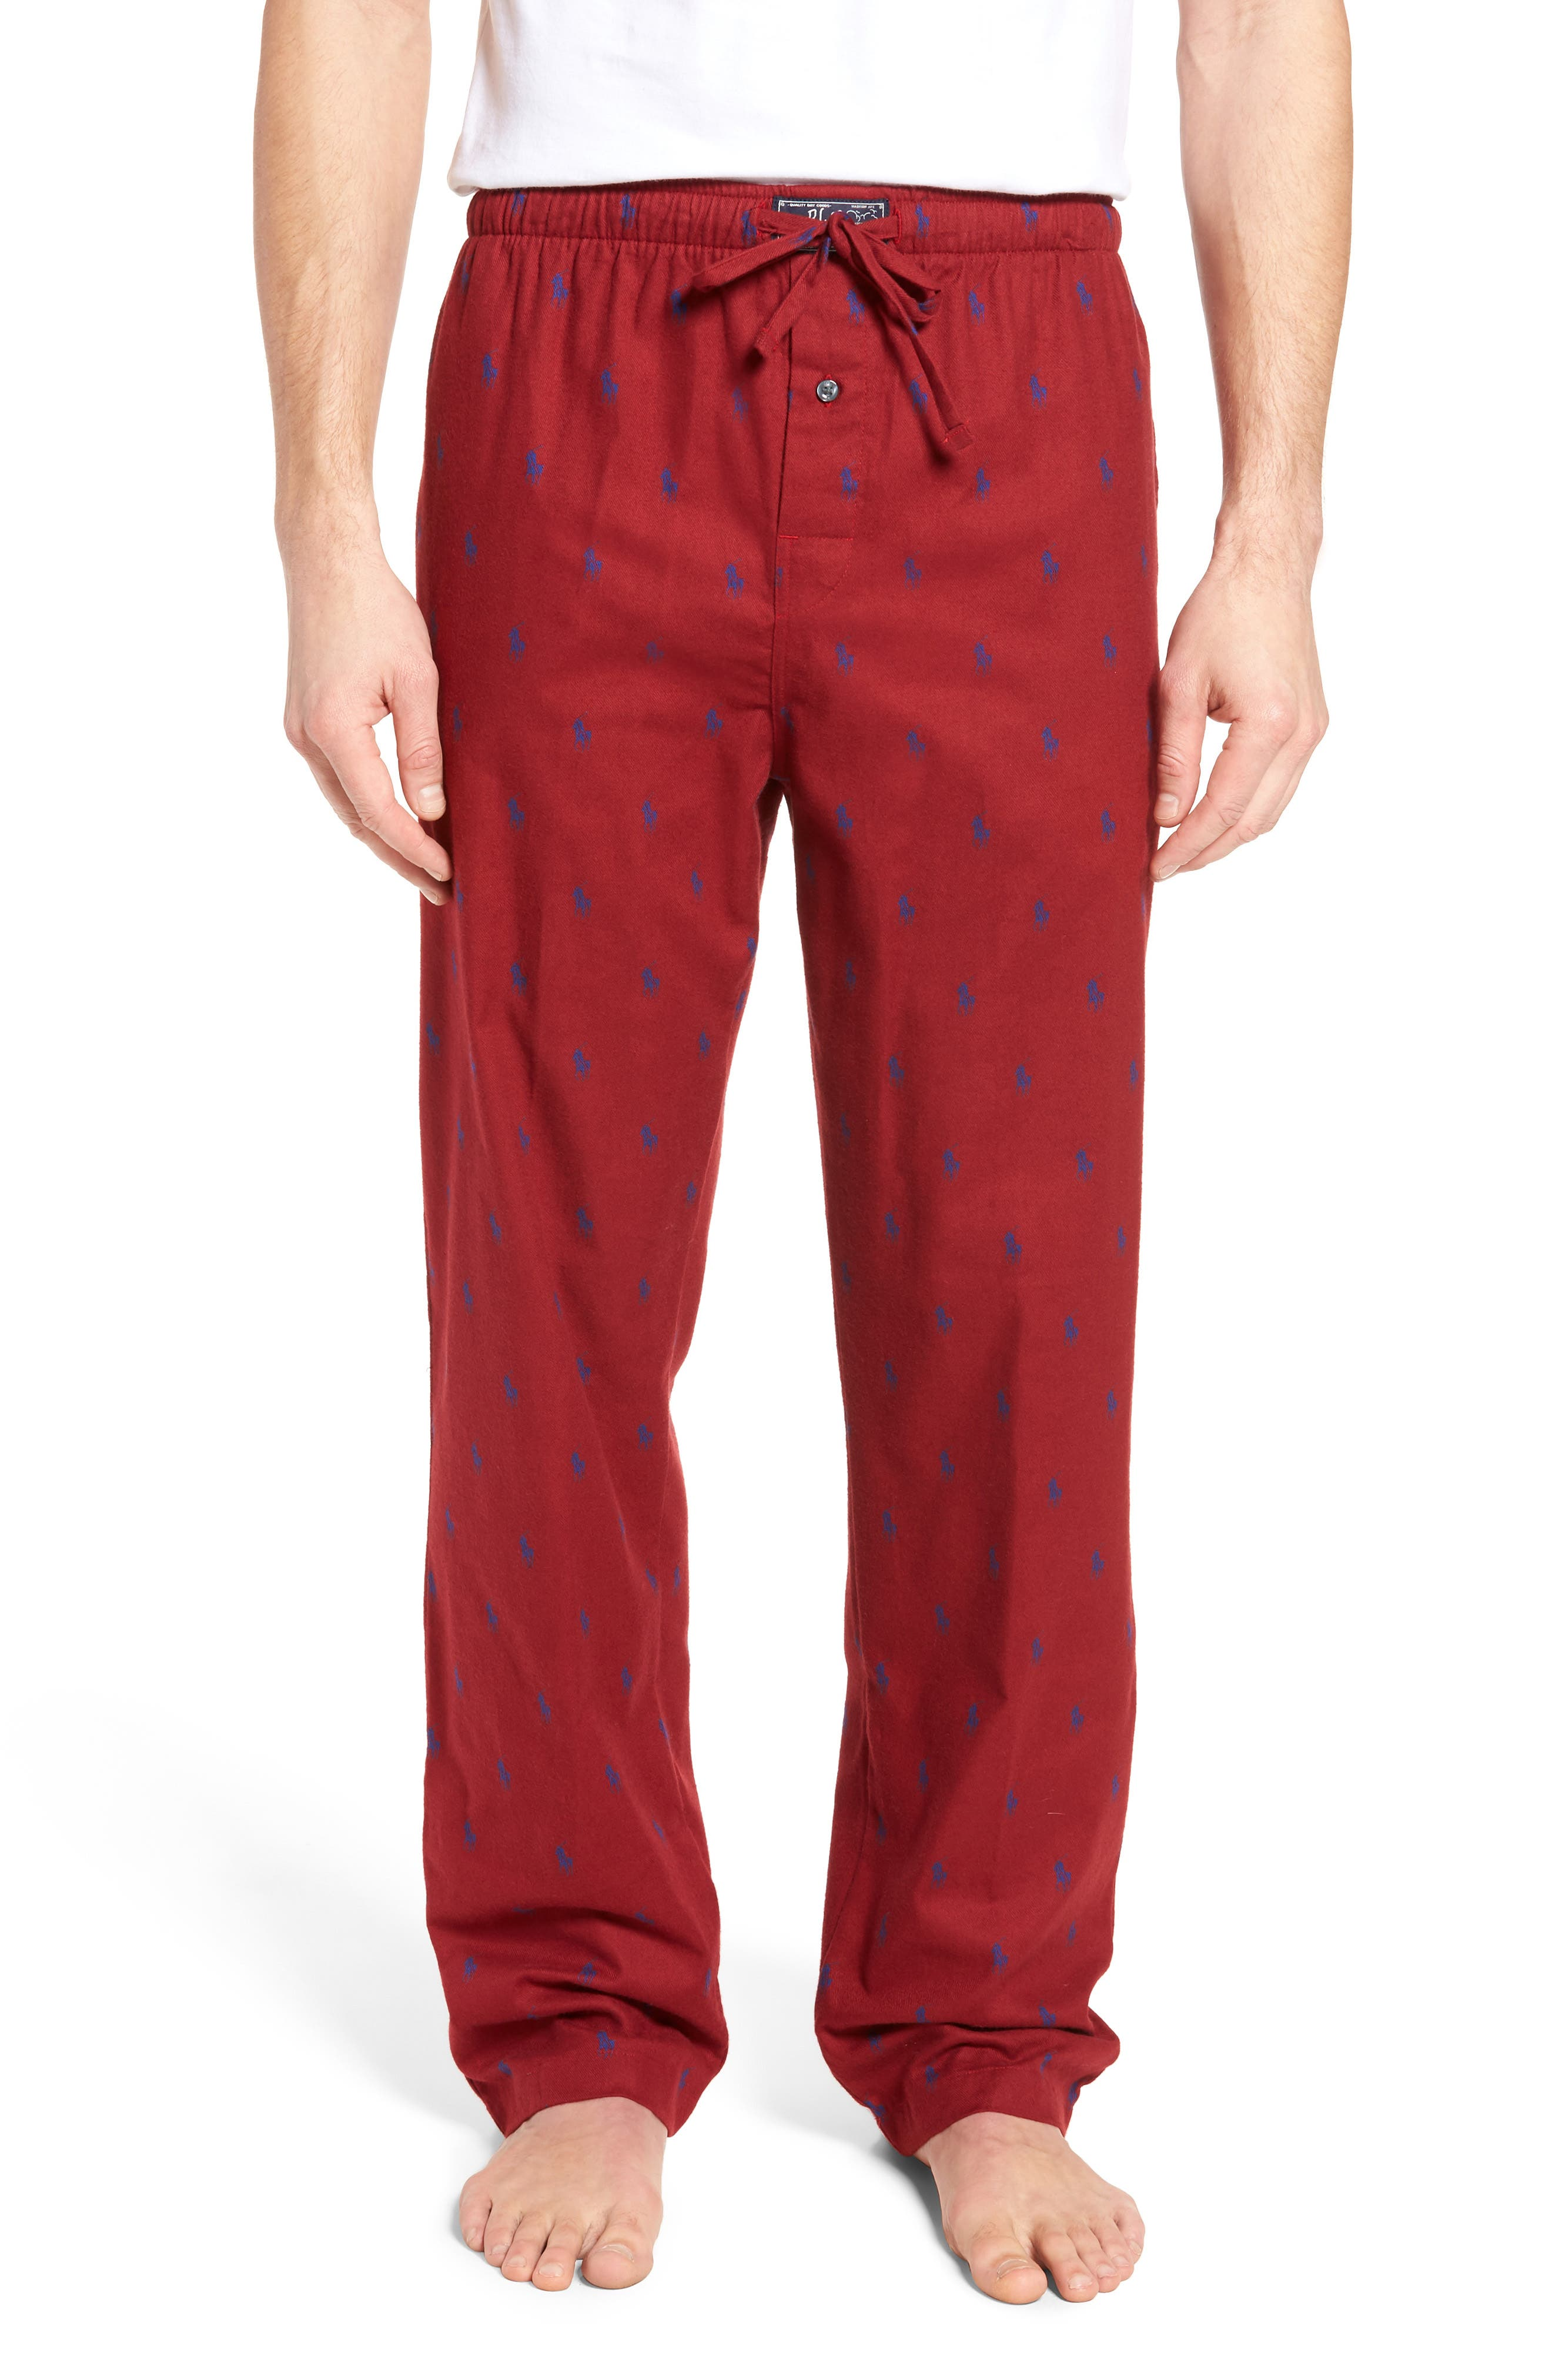 Brushed Flannel Pajama Pants,                             Main thumbnail 1, color,                             Avenue Red/ Royal